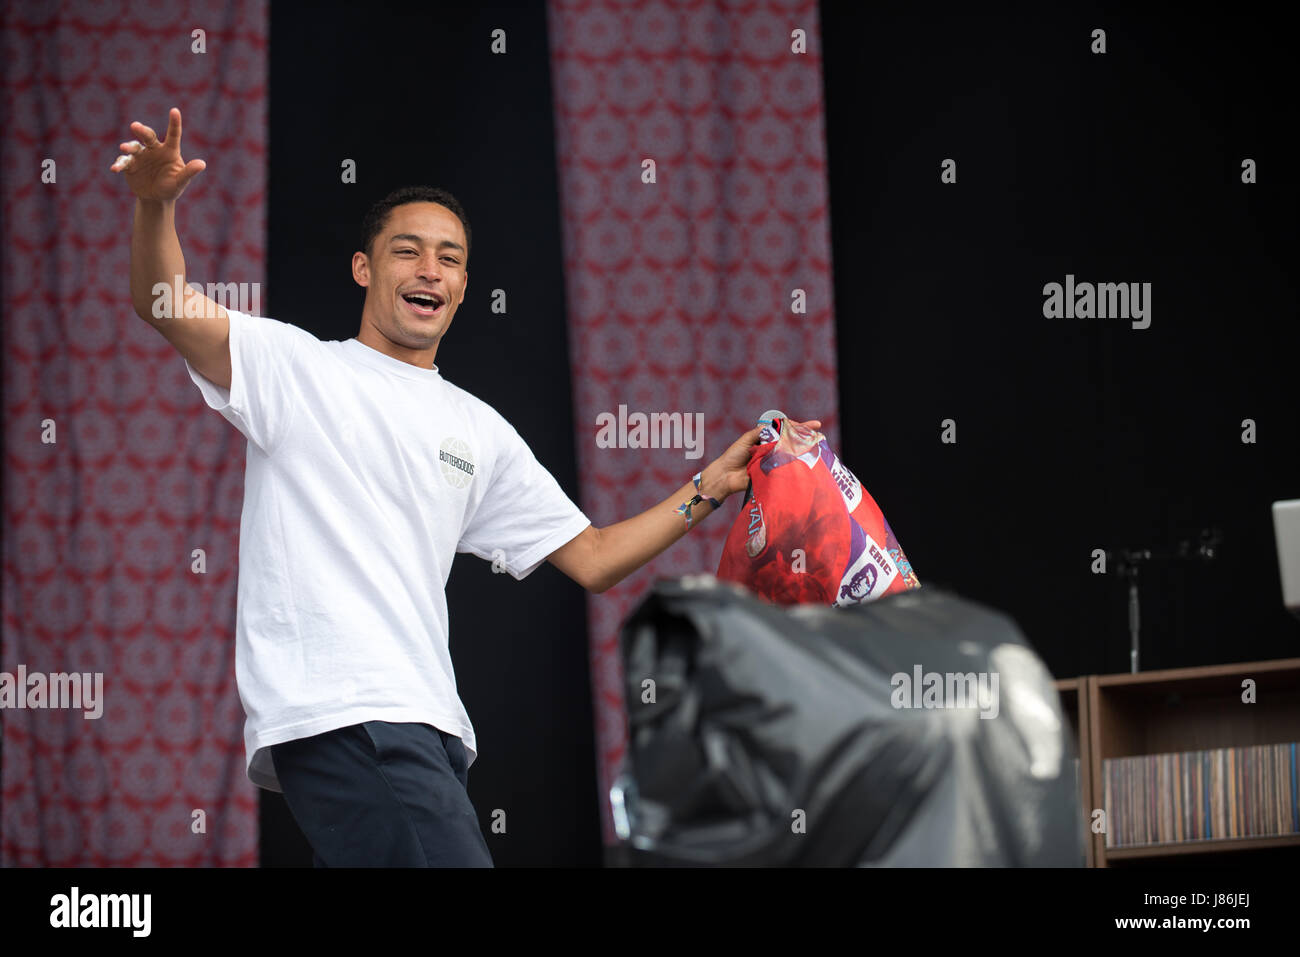 Southampton, Hampshire, UK. 27thth May, 2017. Loyle Carner performs on the main stage. Common People Music Festival returns in 2017 to Southampton Common where the Bestival team, along with curator, Rob Da Bank, have put together a fantastic lineup of acts. Event security remains tight after the recent terror attack in Manchester resulting in the UK terror threat level being escalated from 'Severe' to 'Critical'. Despite these anxieties, festival goers haven't been put off and are determined to enjoy the festivities, live music and sunshine. Credit: Will Bailey/Alamy Live News Stock Photo